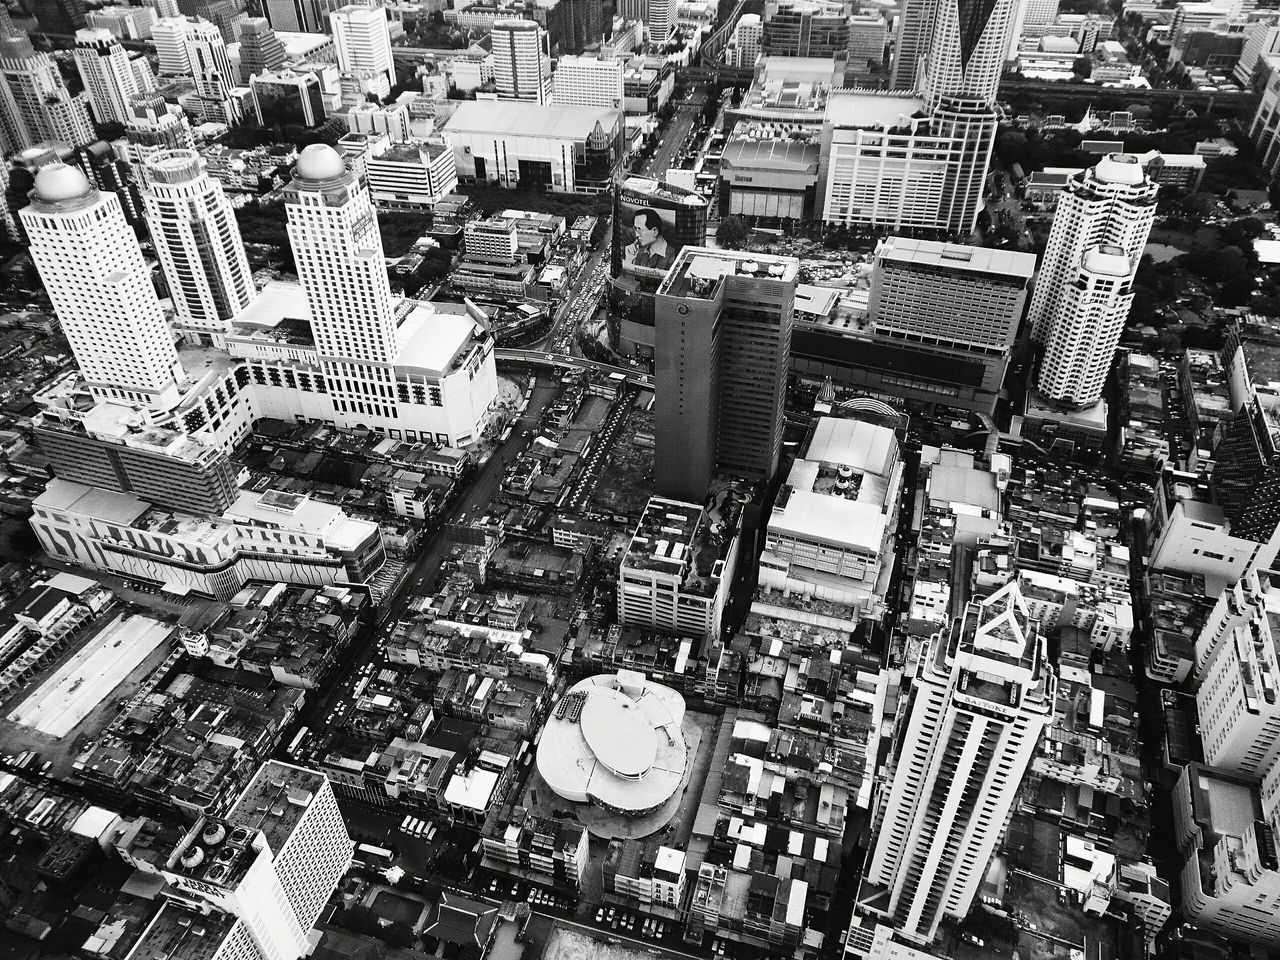 city, skyscraper, cityscape, building exterior, architecture, crowded, modern, high angle view, aerial view, built structure, travel destinations, outdoors, urban skyline, day, people